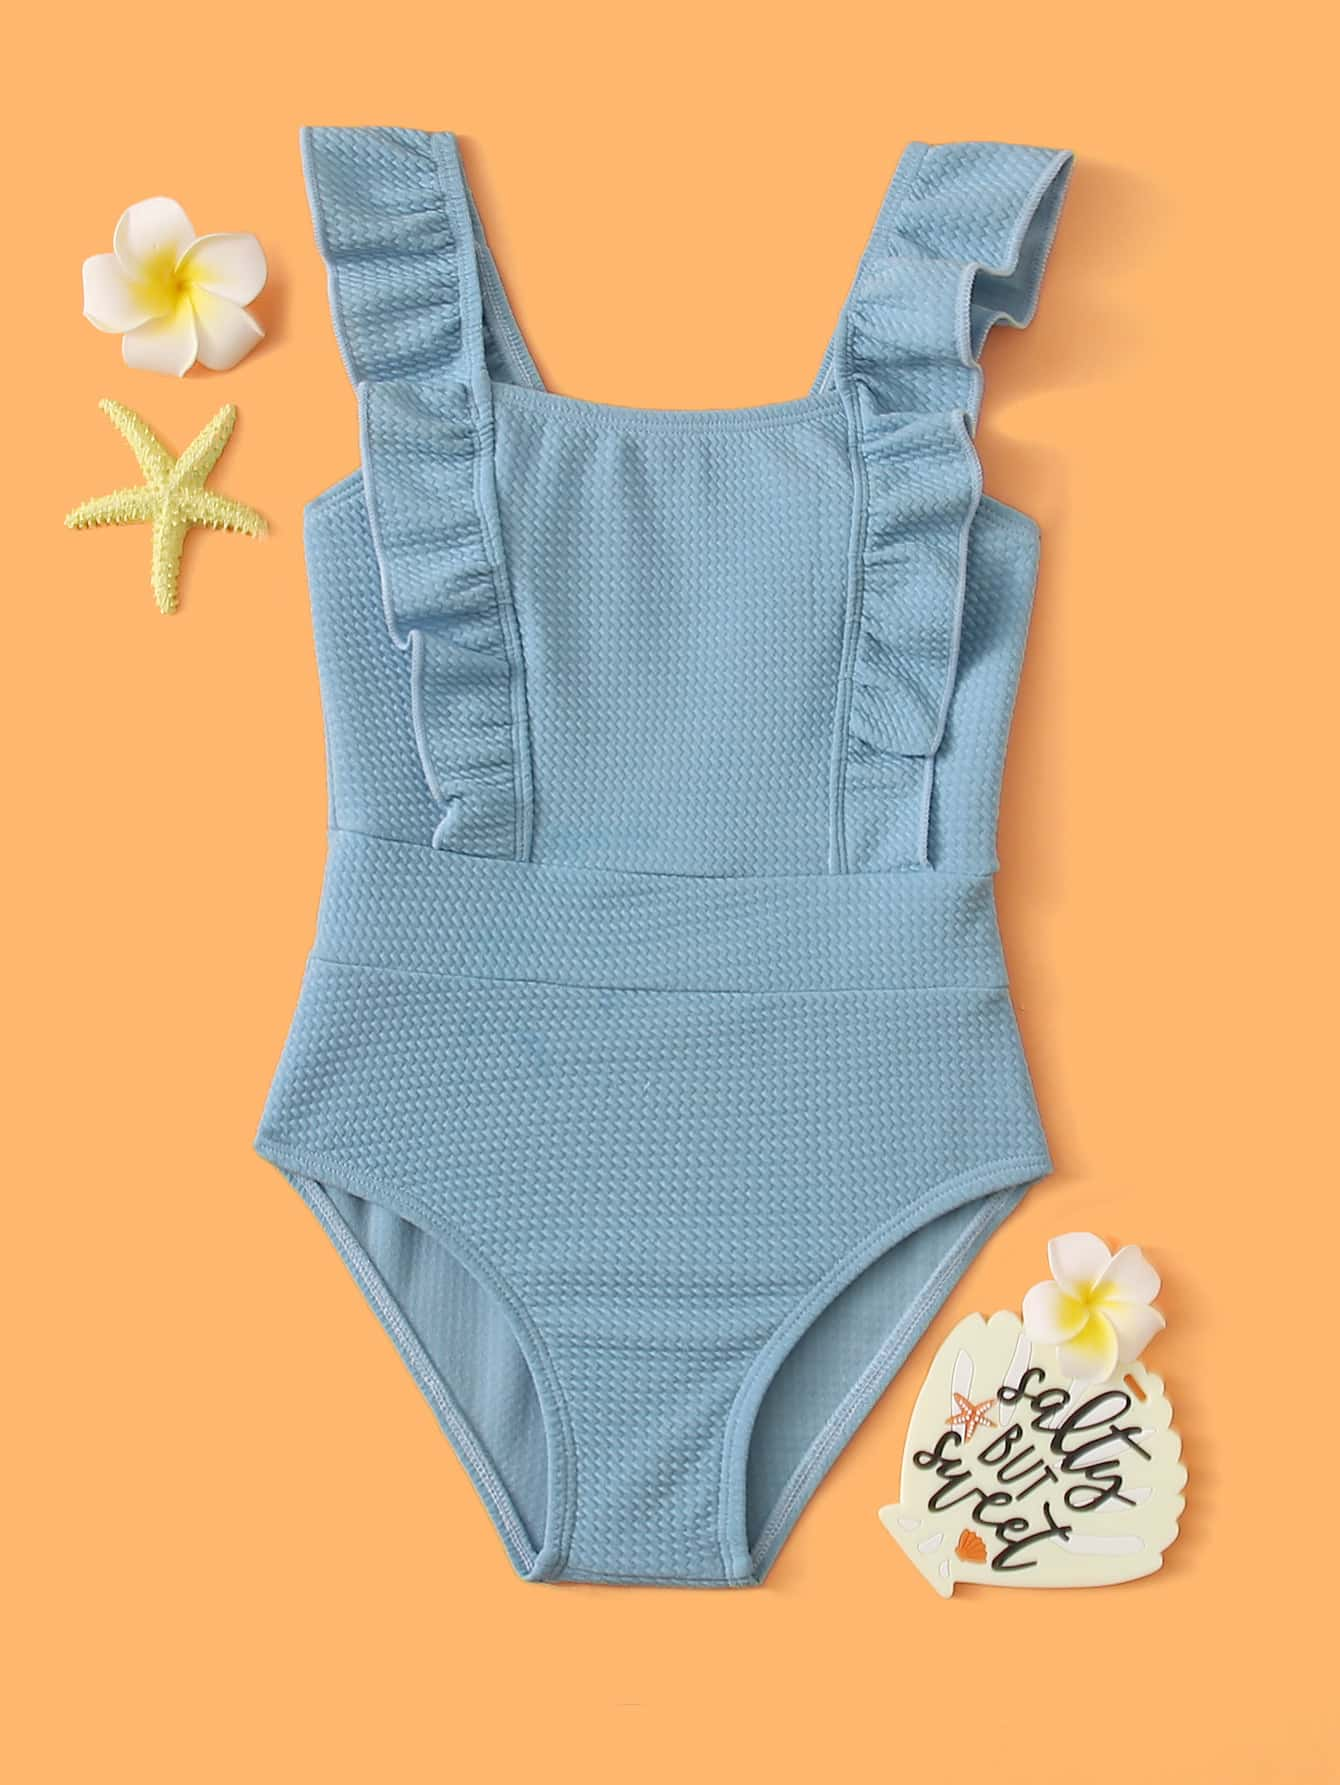 Toddler Girls Textured Ruffle One Piece Swimsuit - FLJ CORPORATIONS